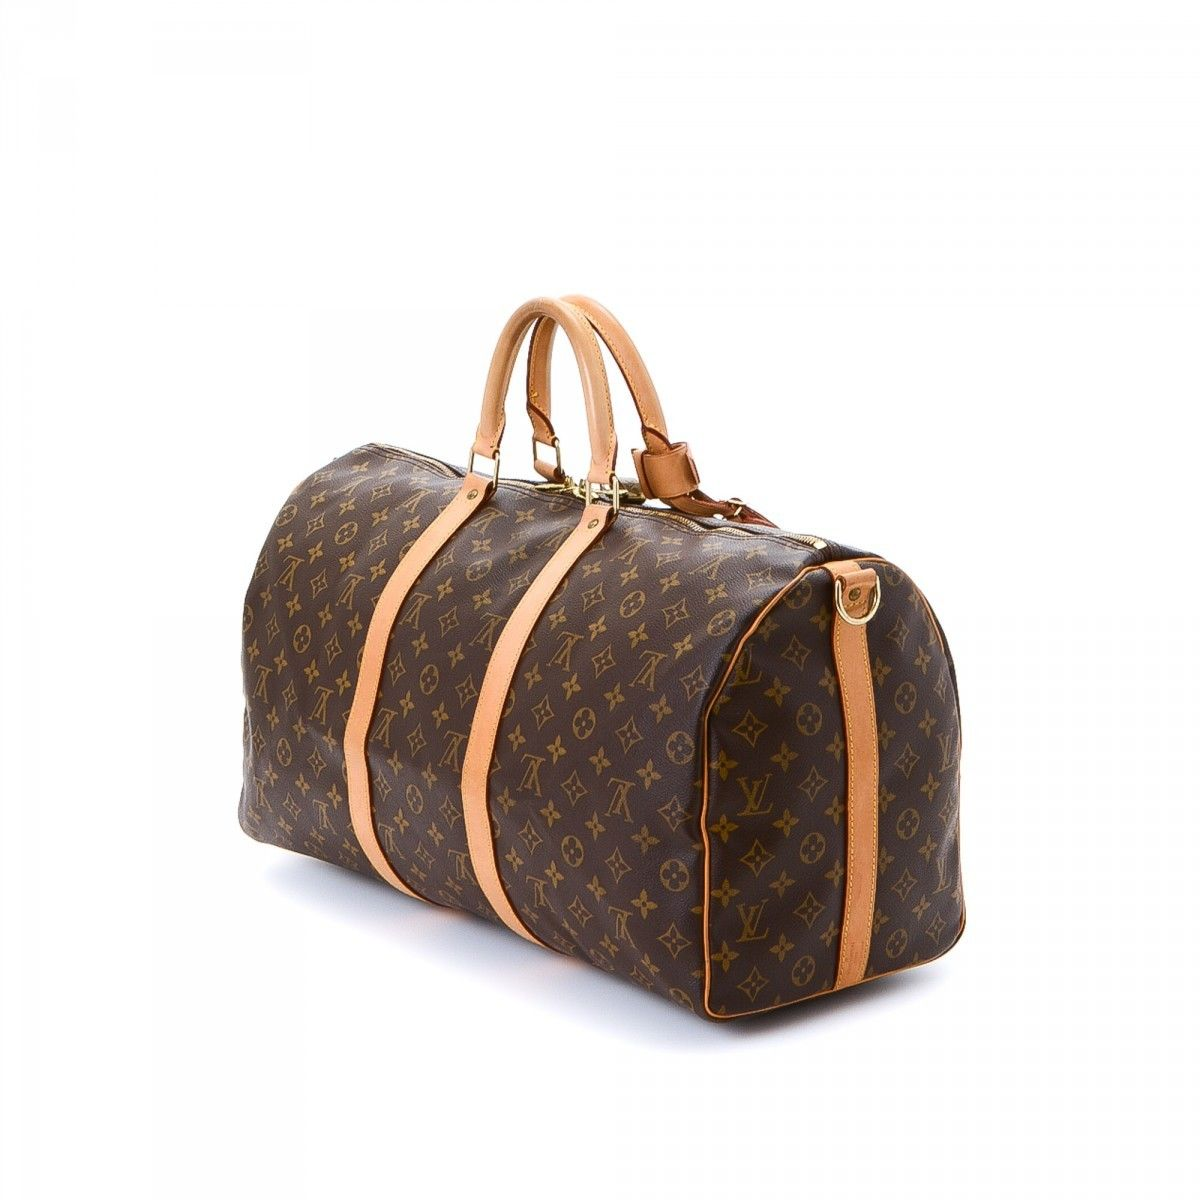 Louis Vuitton Keepall 50 Bandouliere Monogram Coated